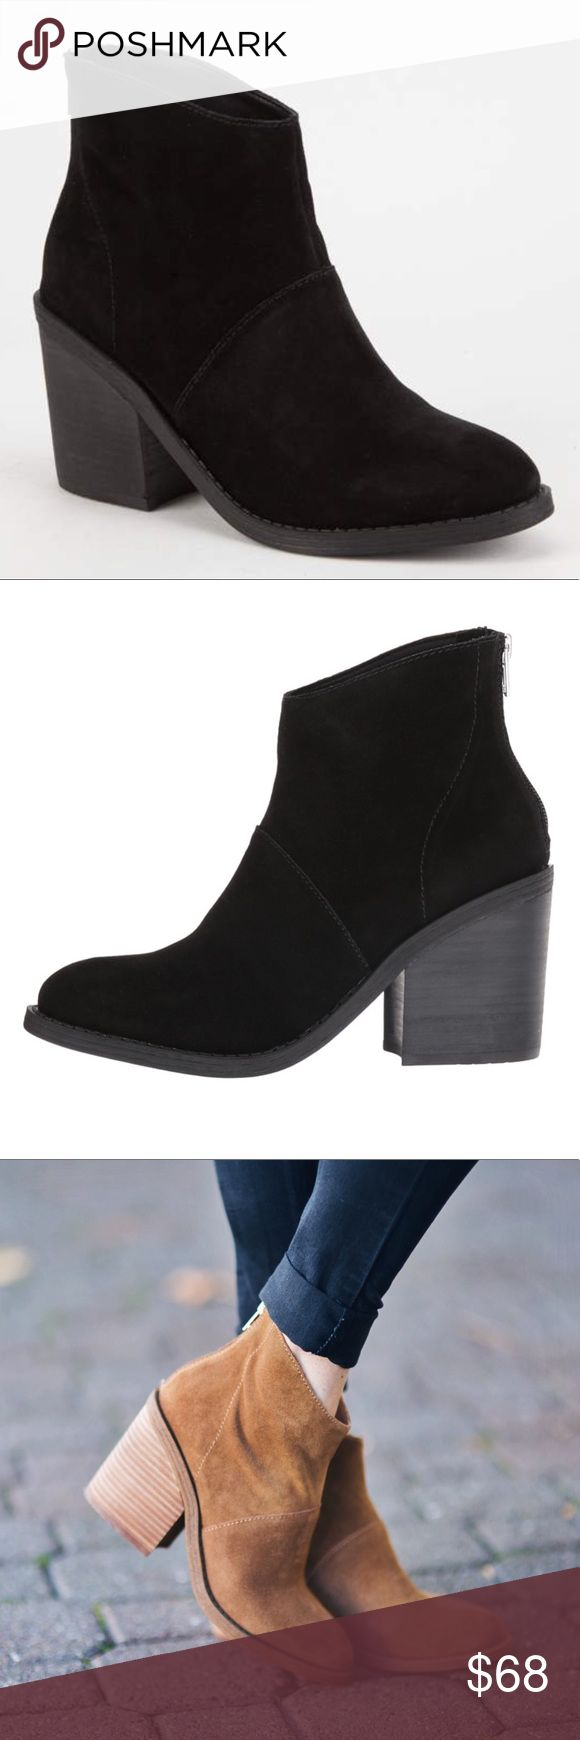 Steve Madden black suede shrines ankle bootie Brand new without box. Size 9.5. Genuine suede. Back zipper. Stacked heel. So cute and right on trend! I posted a picture of these in tan to give you an idea of how they look on. Steve Madden black suede shrines ankle bootie. Steve Madden Shoes Ankle Boots & Booties